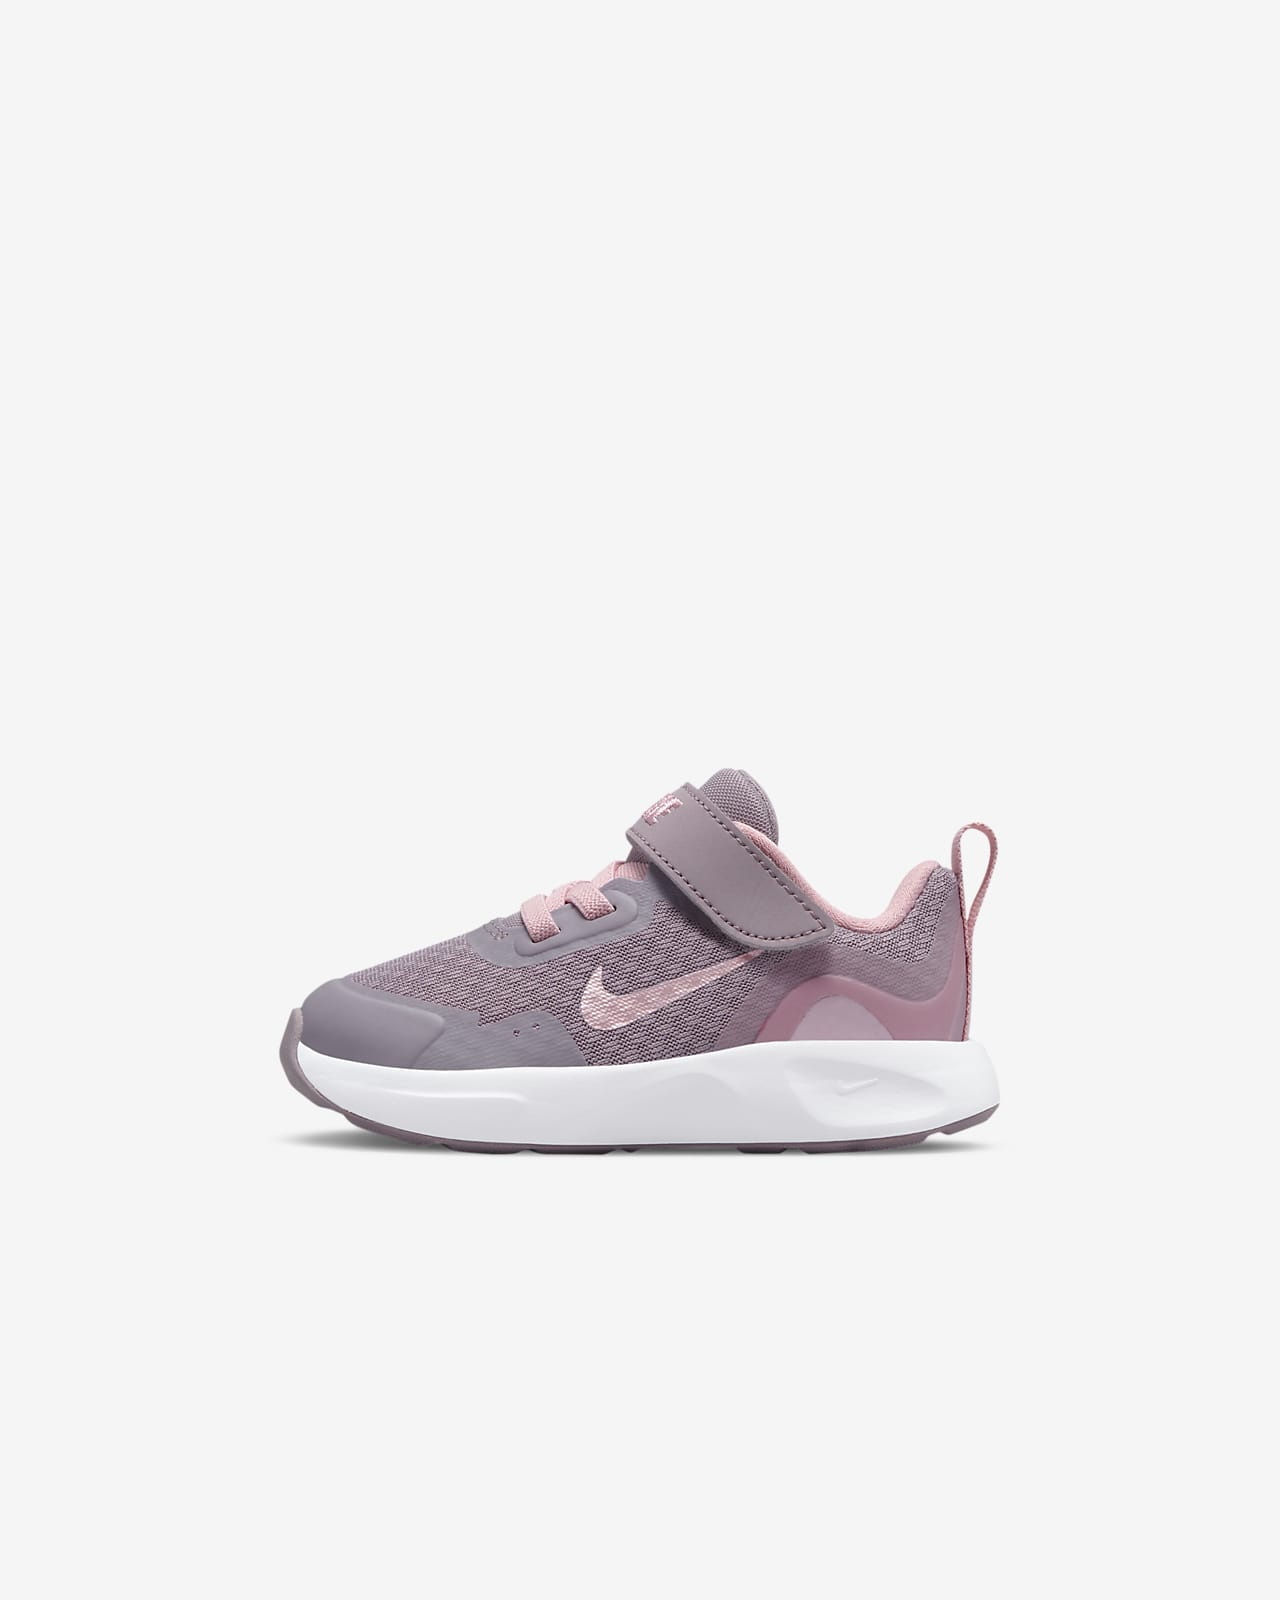 Nike WearAllDay Baby/Toddler Shoes